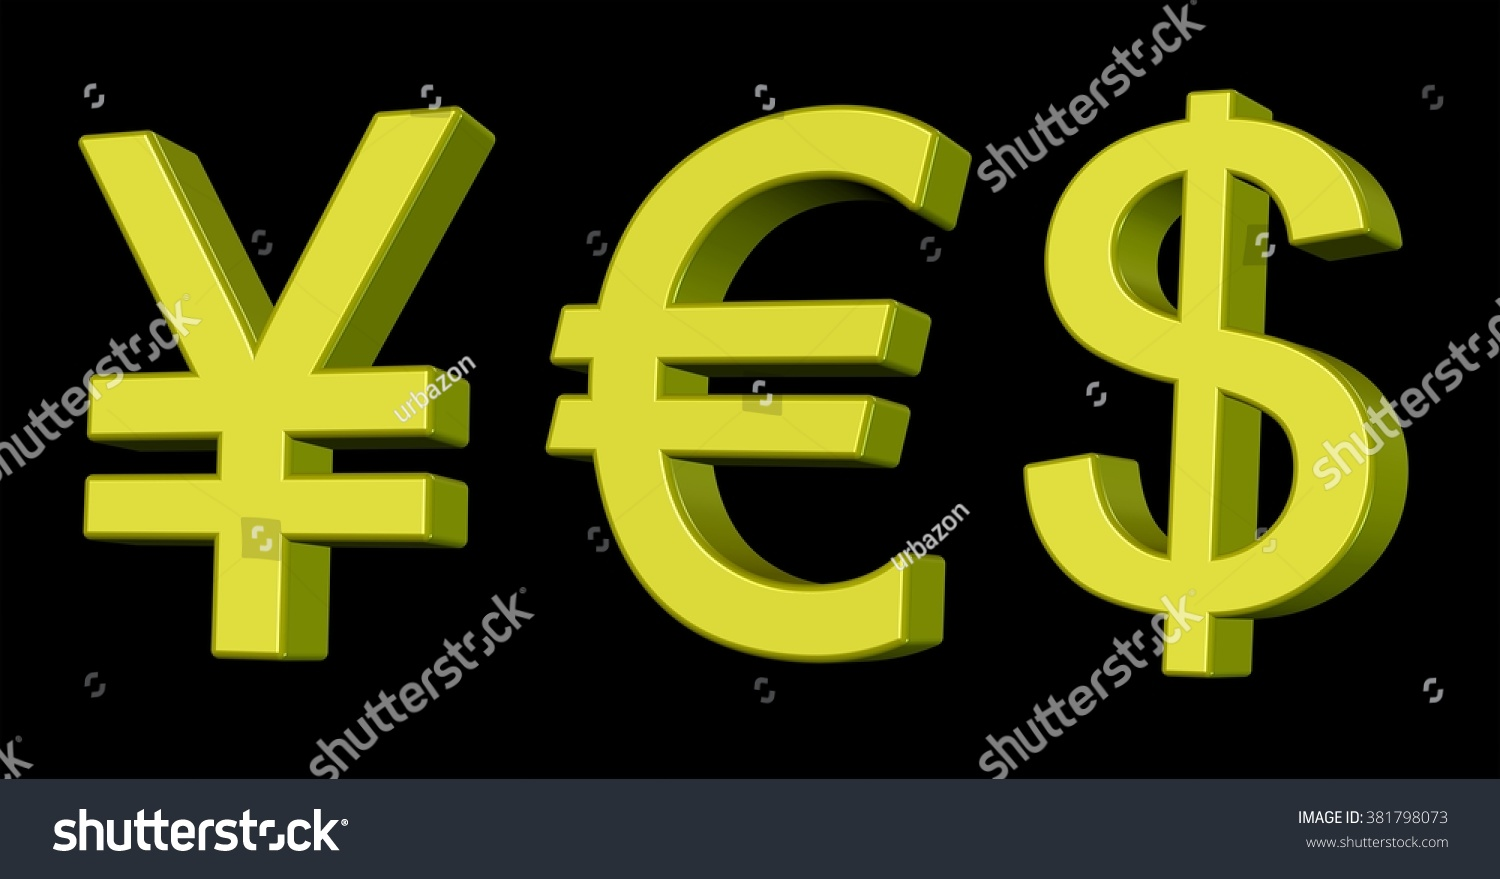 Golden 3d currency symbols for yen stock illustration 381798073 golden 3d currency symbols for yen euro and us dollar forming a word biocorpaavc Gallery